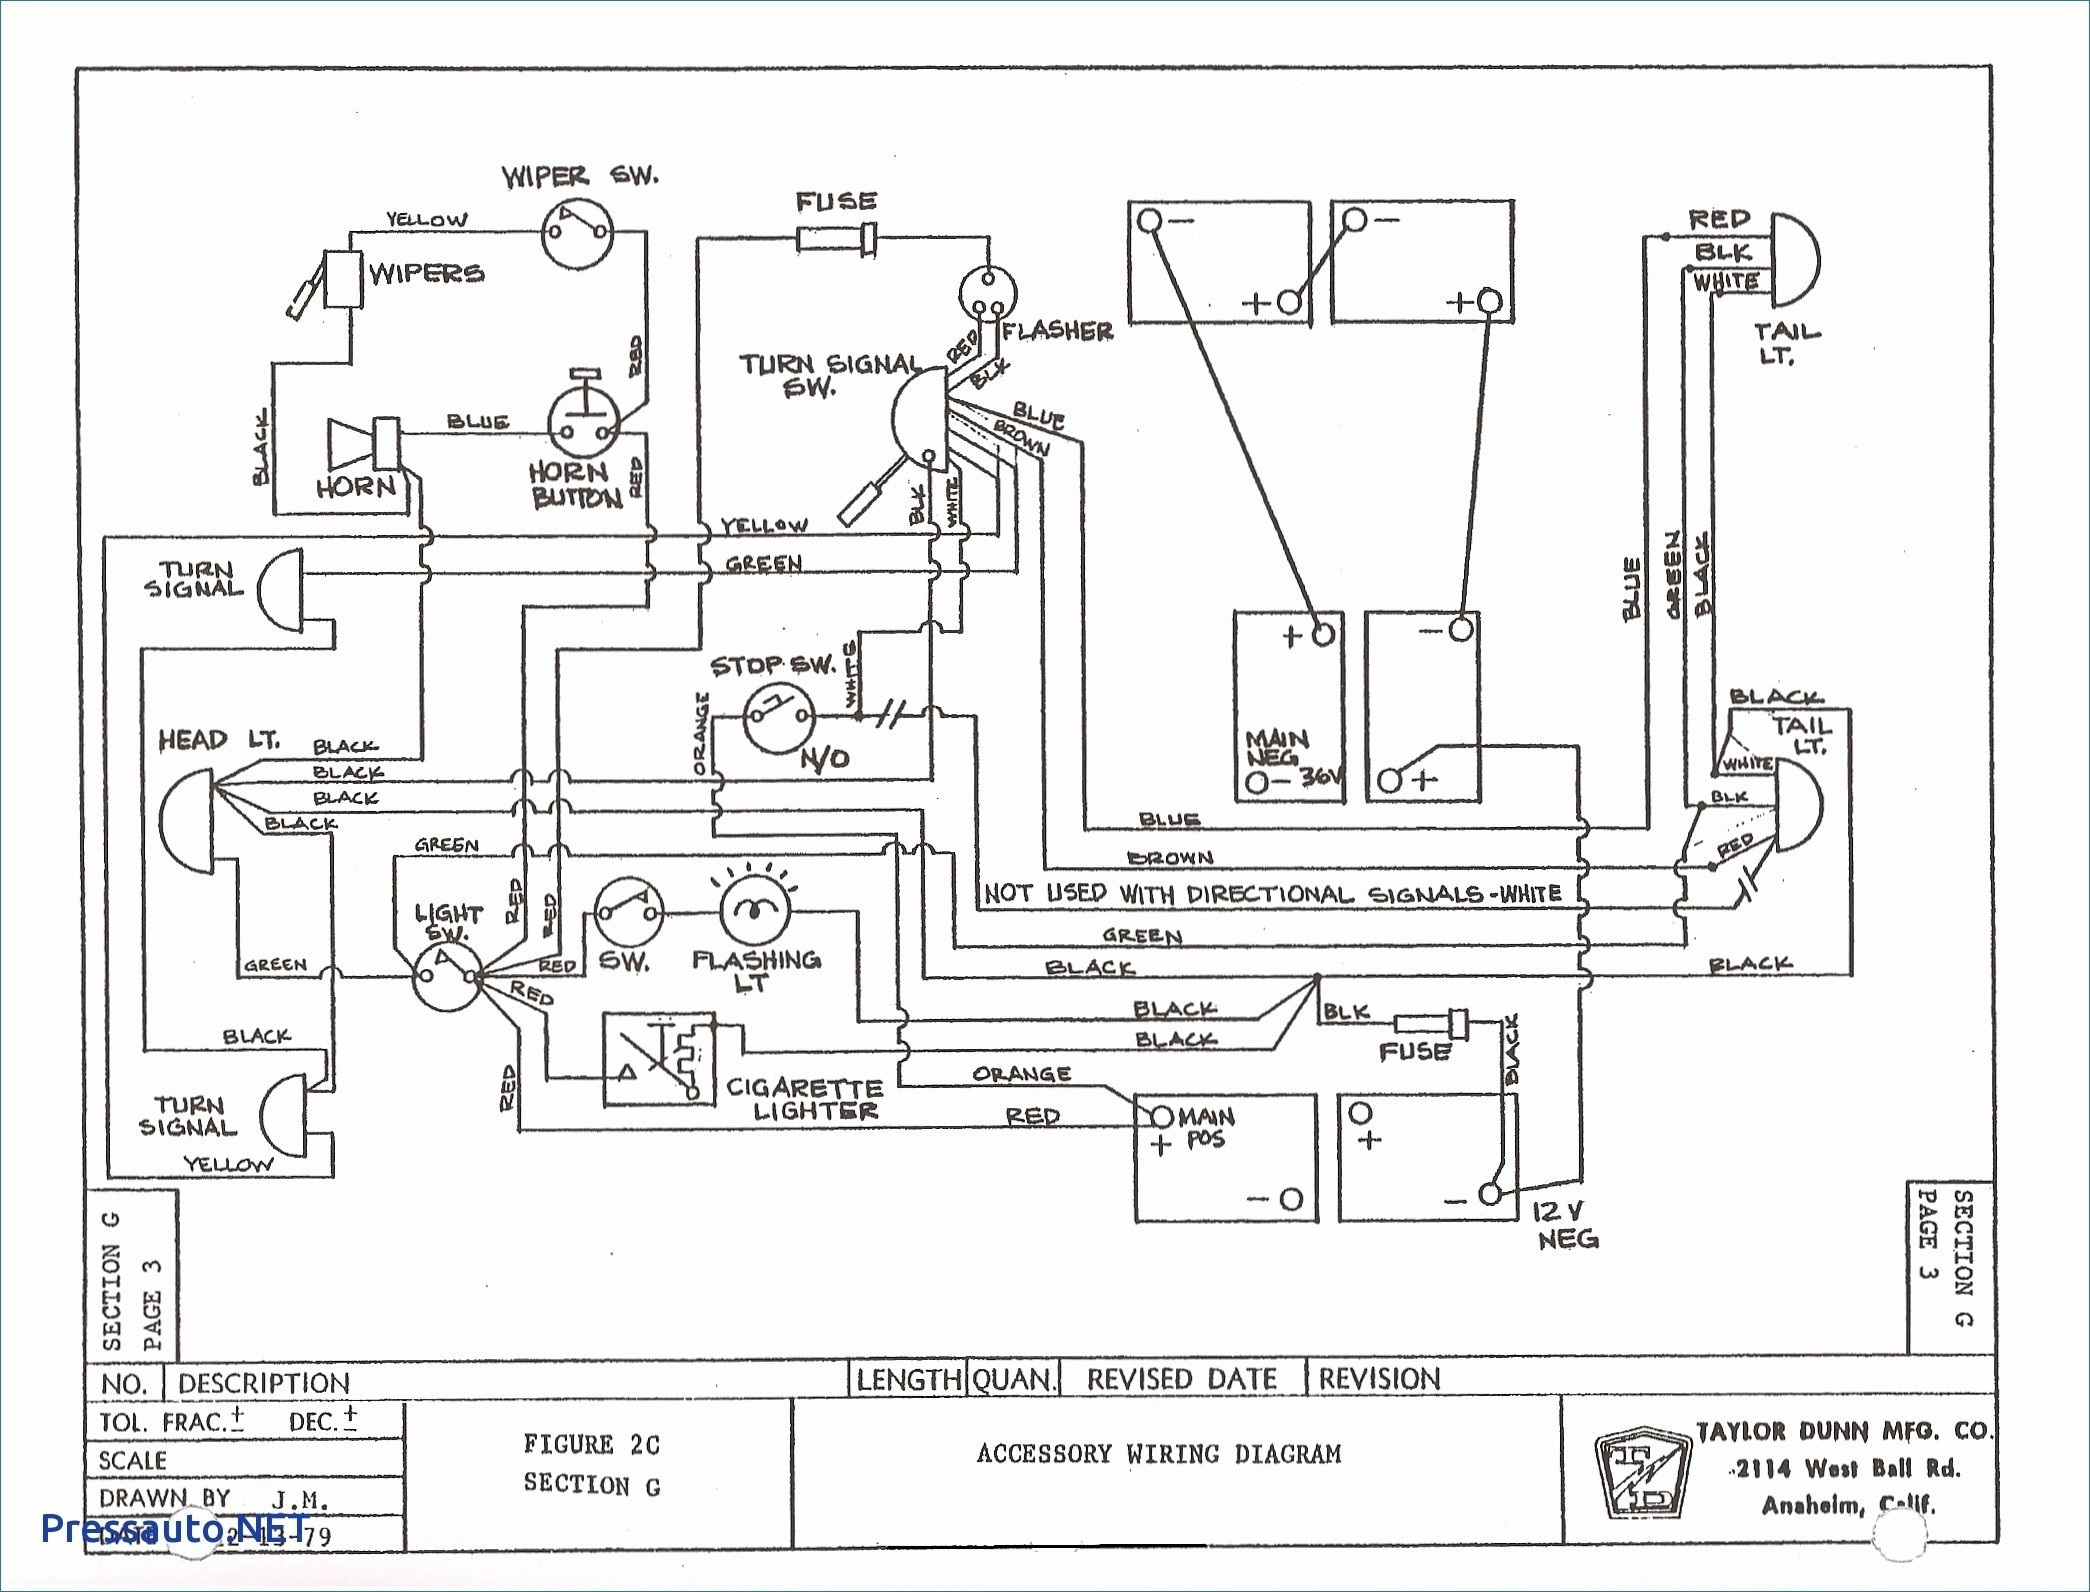 36 Volt Club Car Golf Cart Wiring Diagram